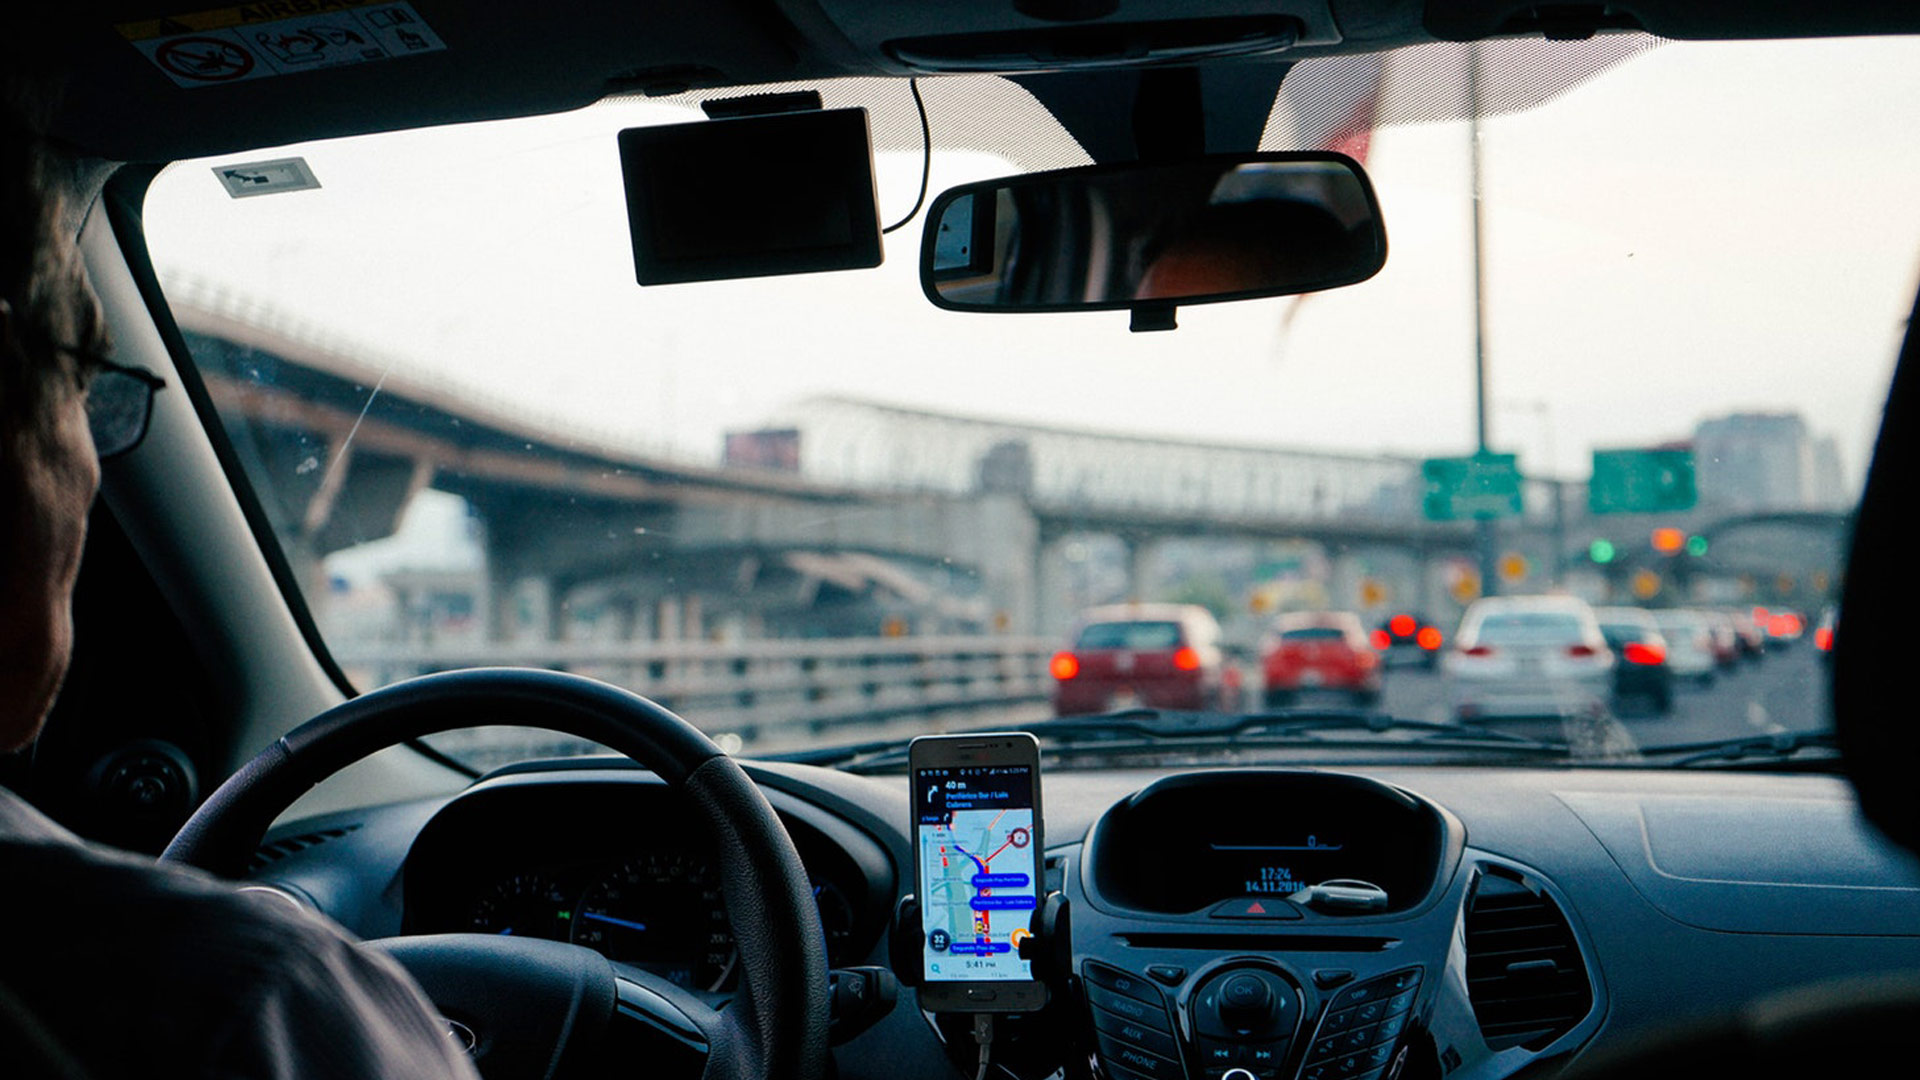 Smart Phones In Cars - MAT Foundry